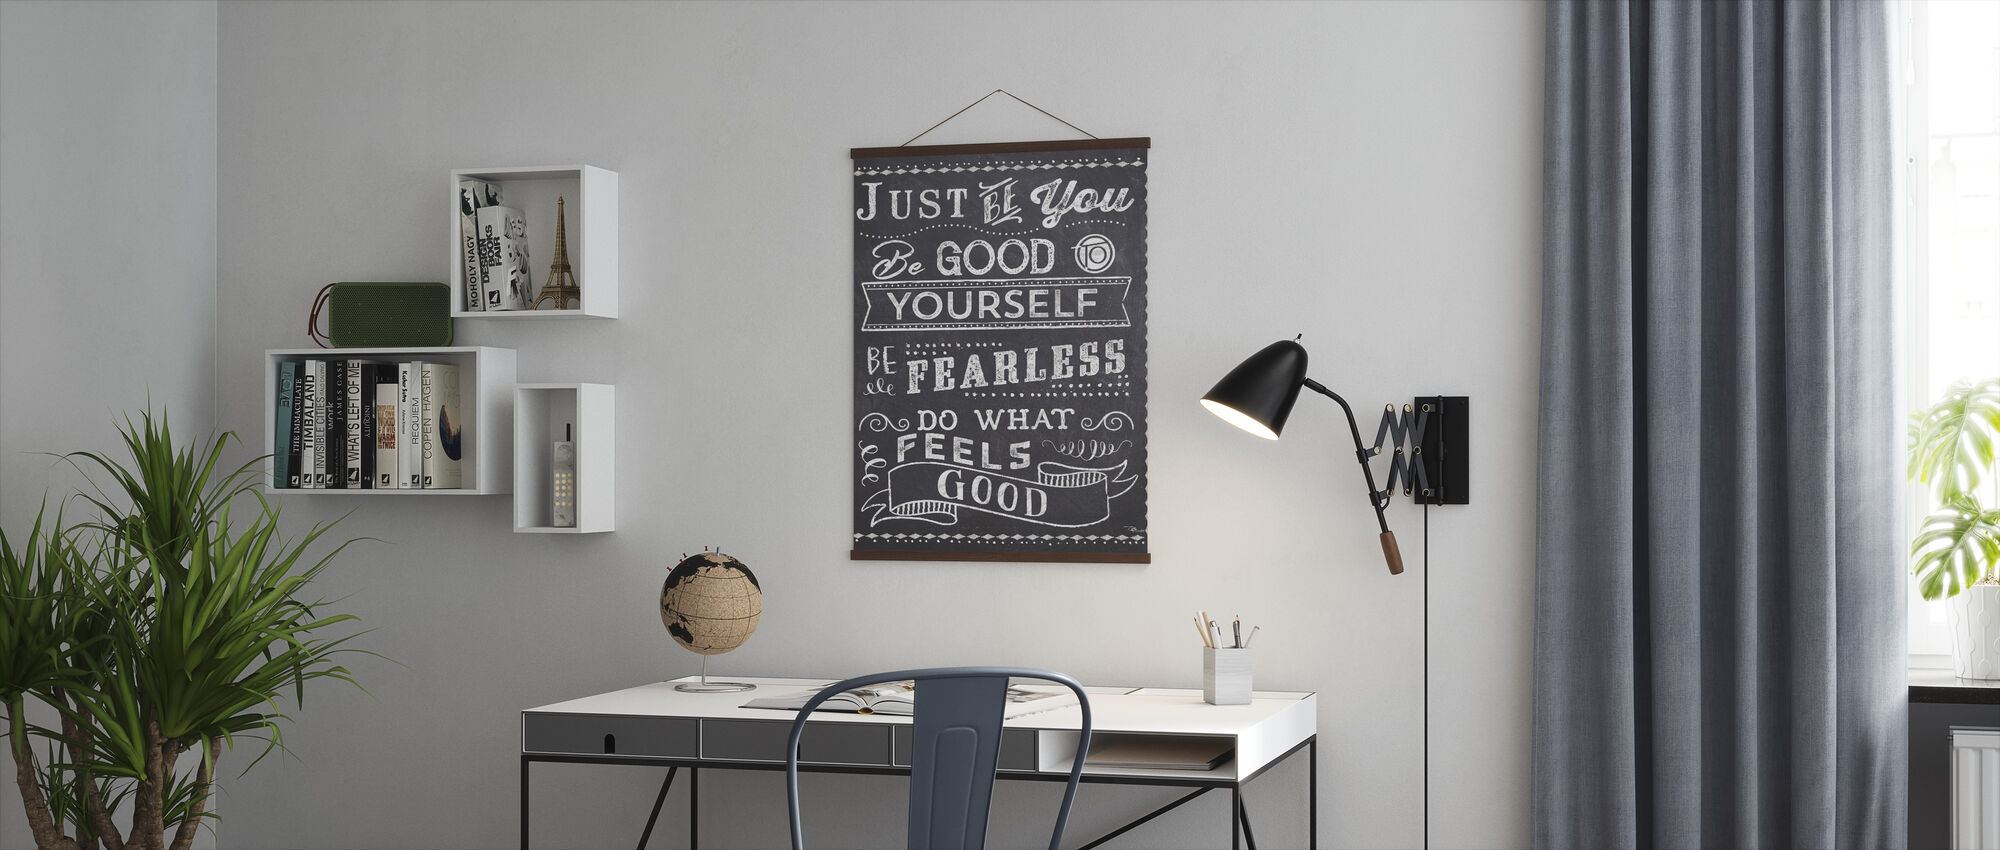 Just Be You II - Poster - Office